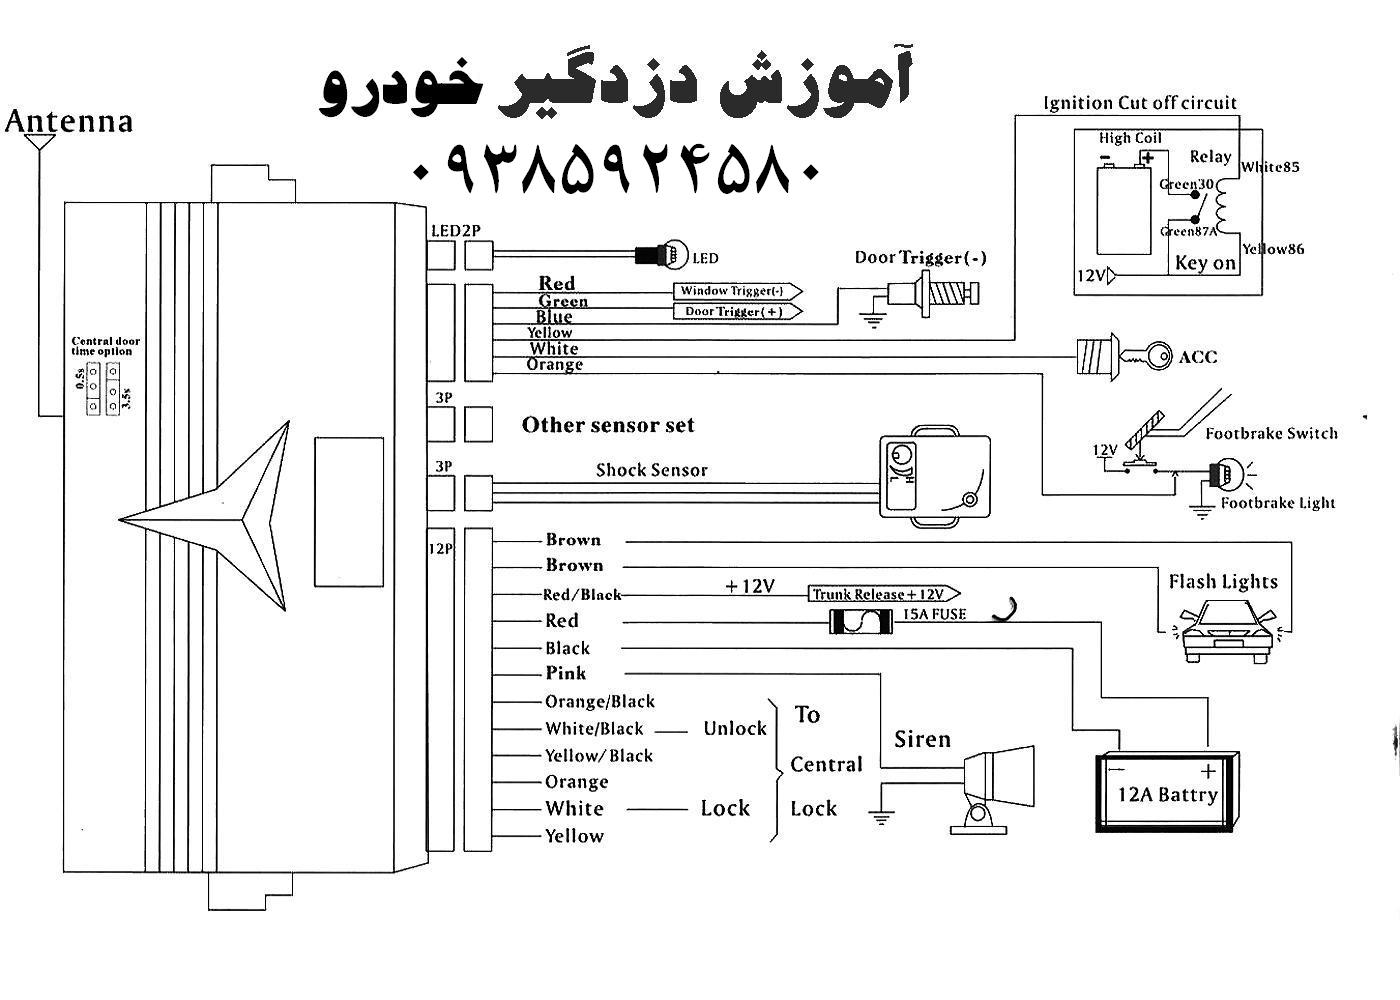 car alarm map (10) wiring diagram for viper car alarm efcaviation com viper car alarm wiring diagram at cita.asia